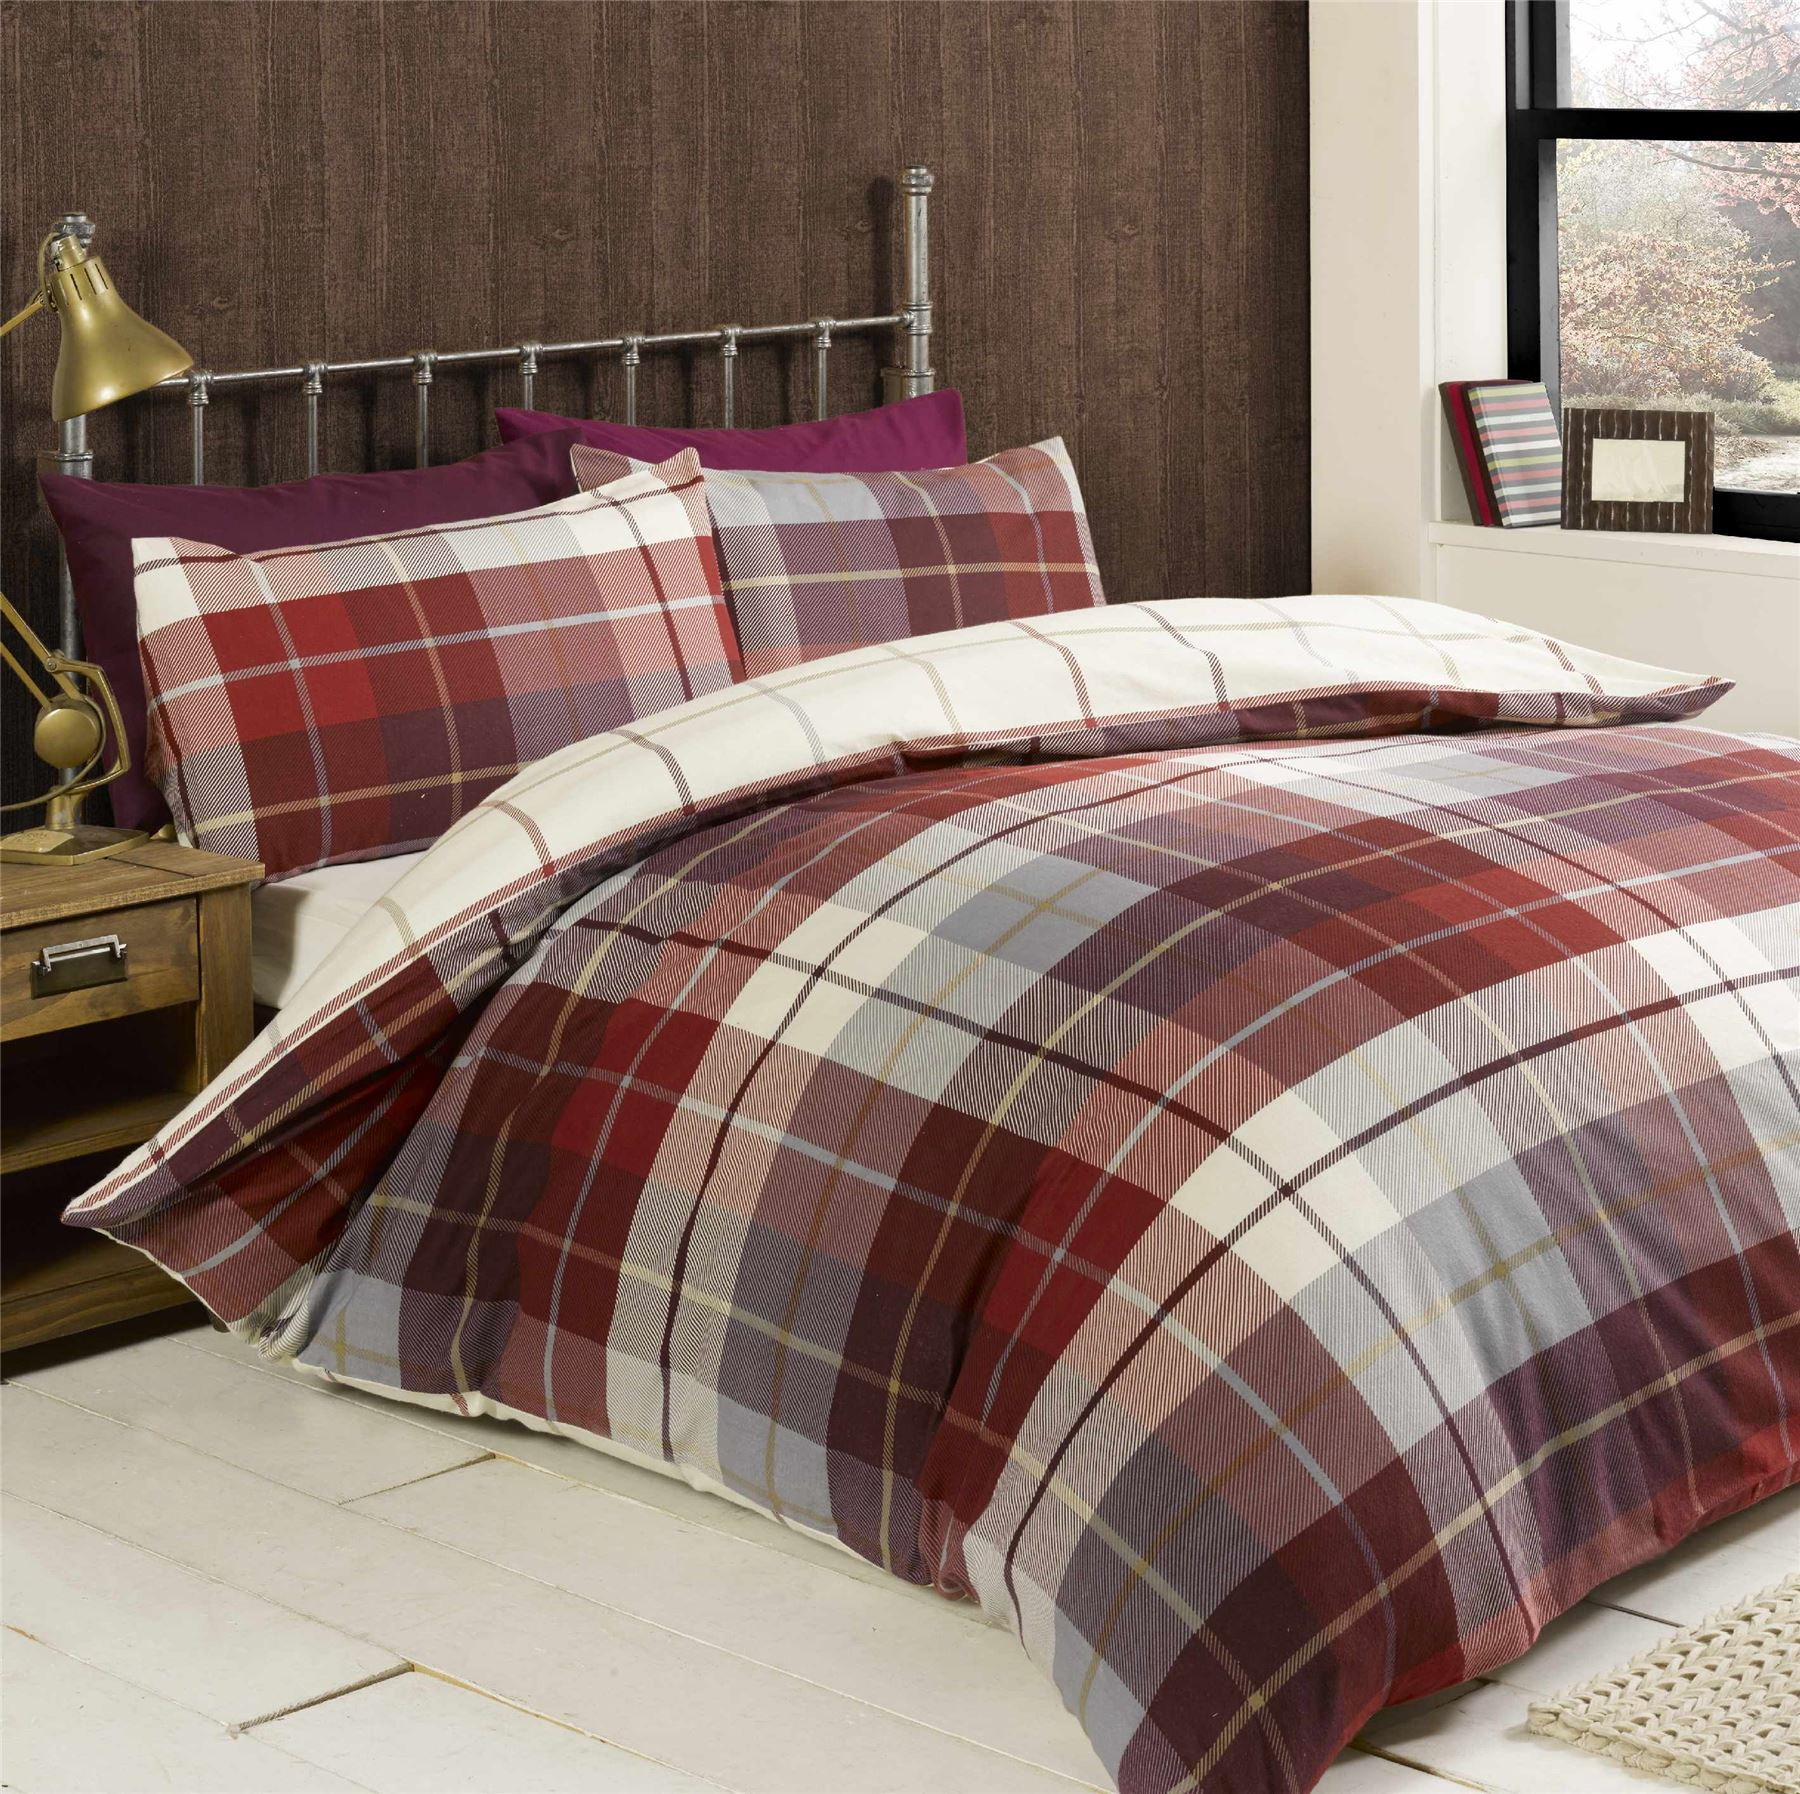 contempo home red cotton amazon uk just duvet dp set co king plaid cover brushed kitchen